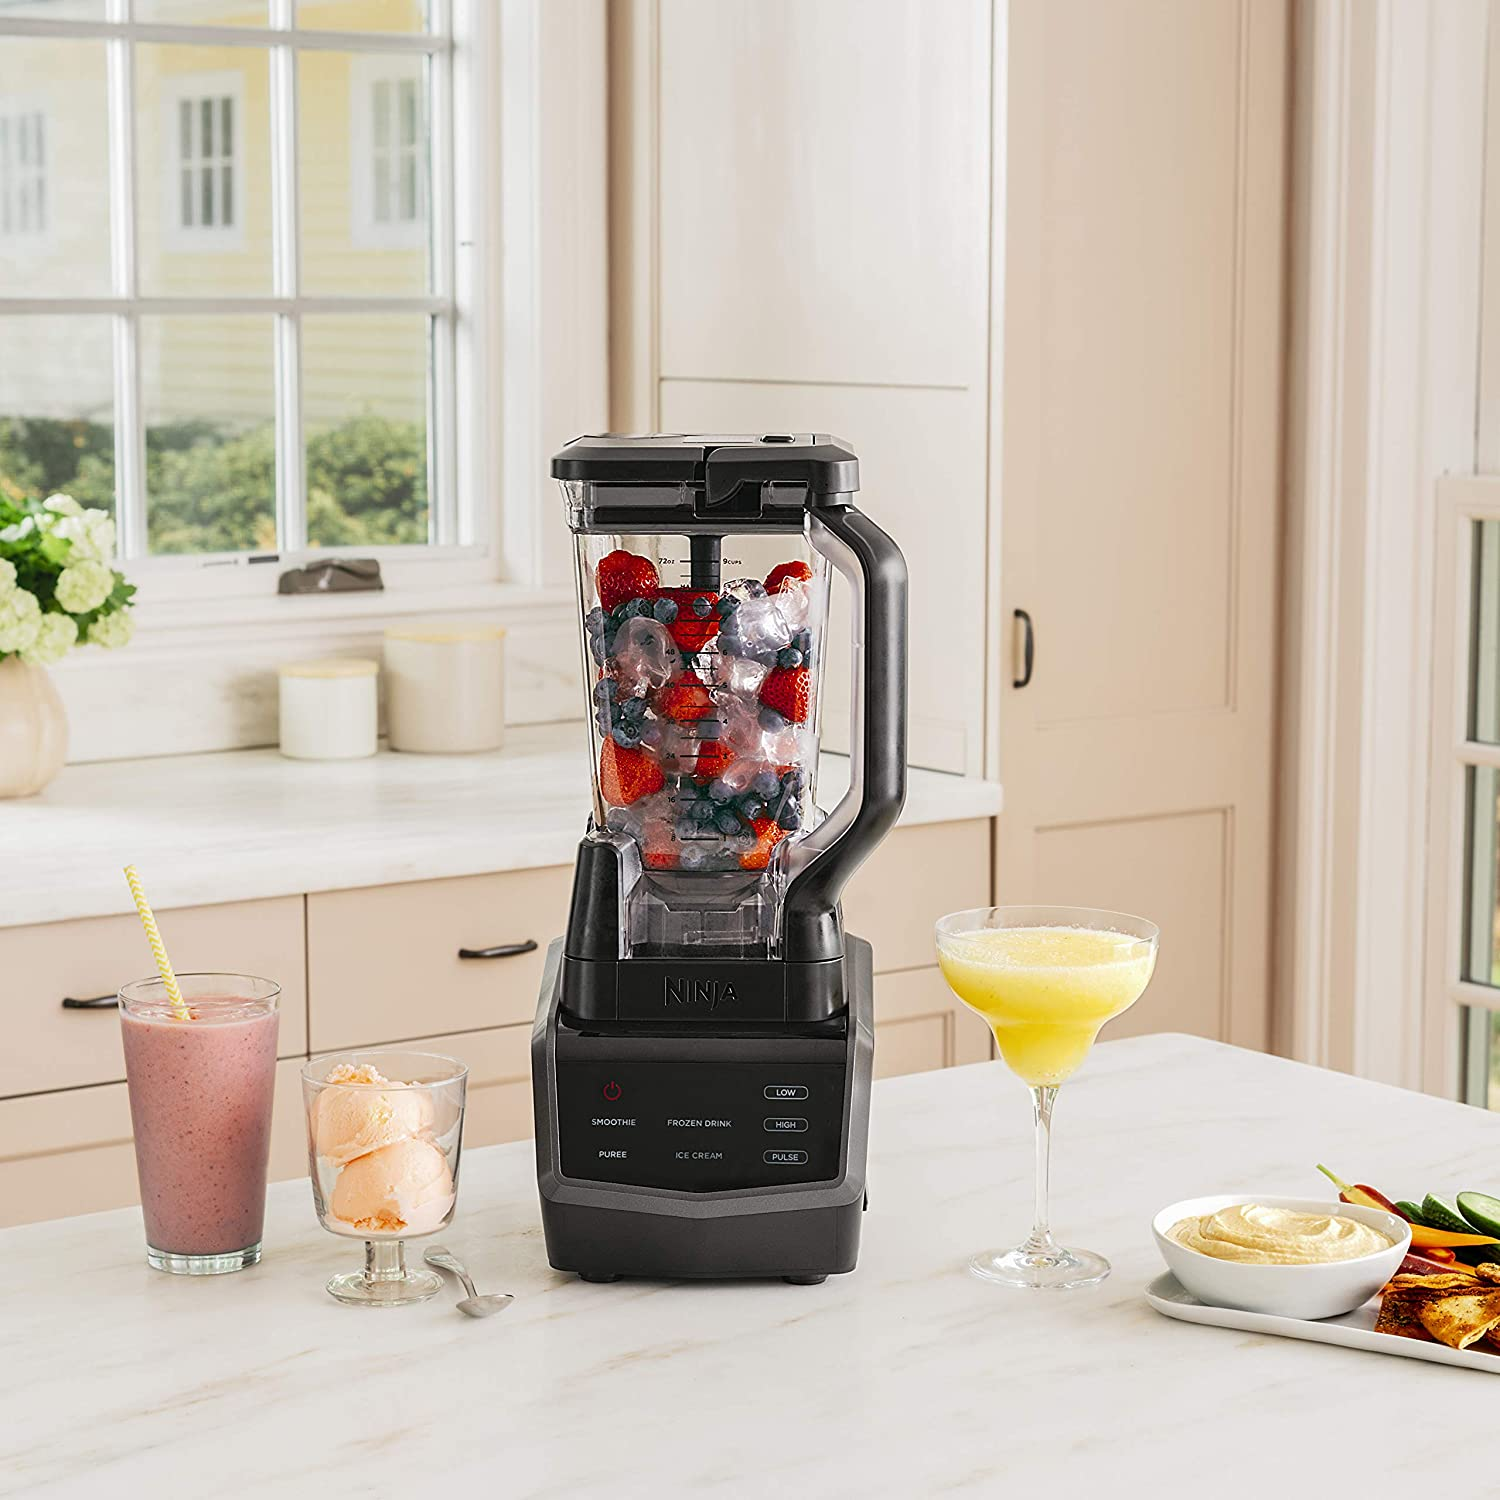 Top 15 Best Baby Food Steamer And Blender (2020 Reviews & Buying Guide) 5